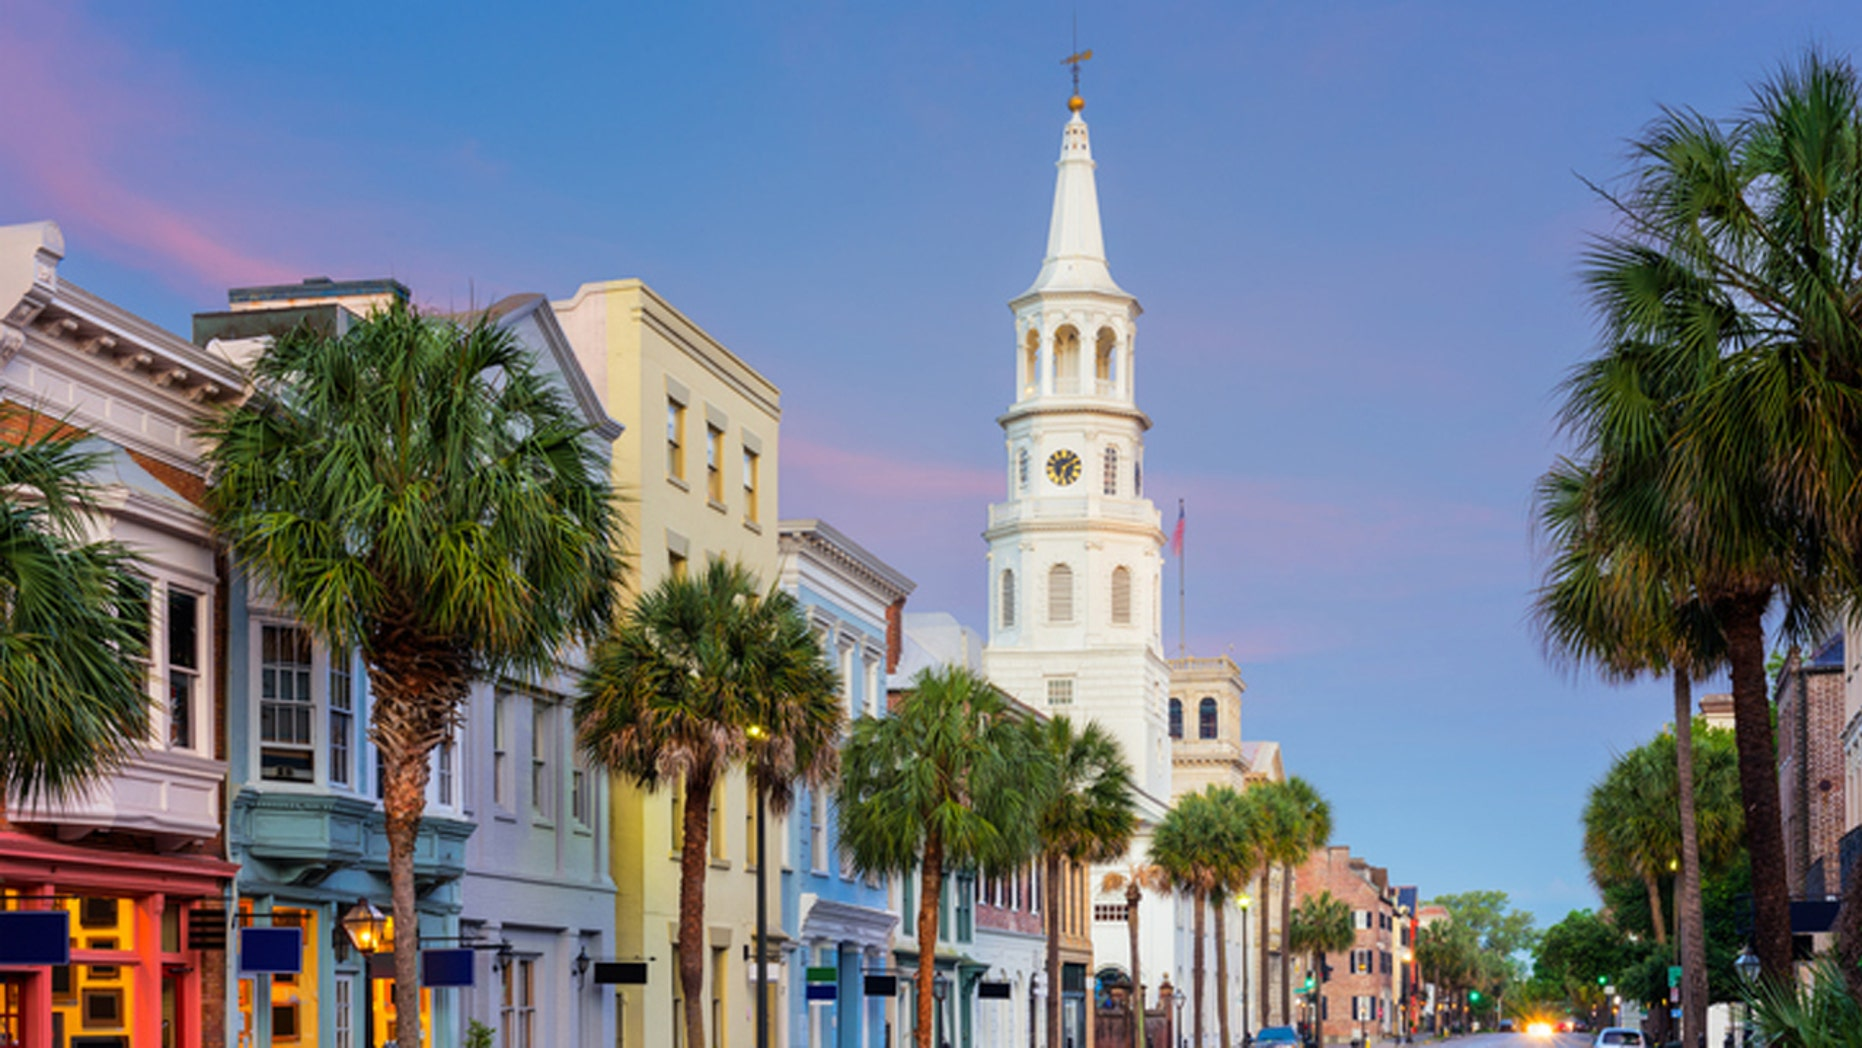 Charming Charleston, South Carolina is a popular spot to draw inspiration.